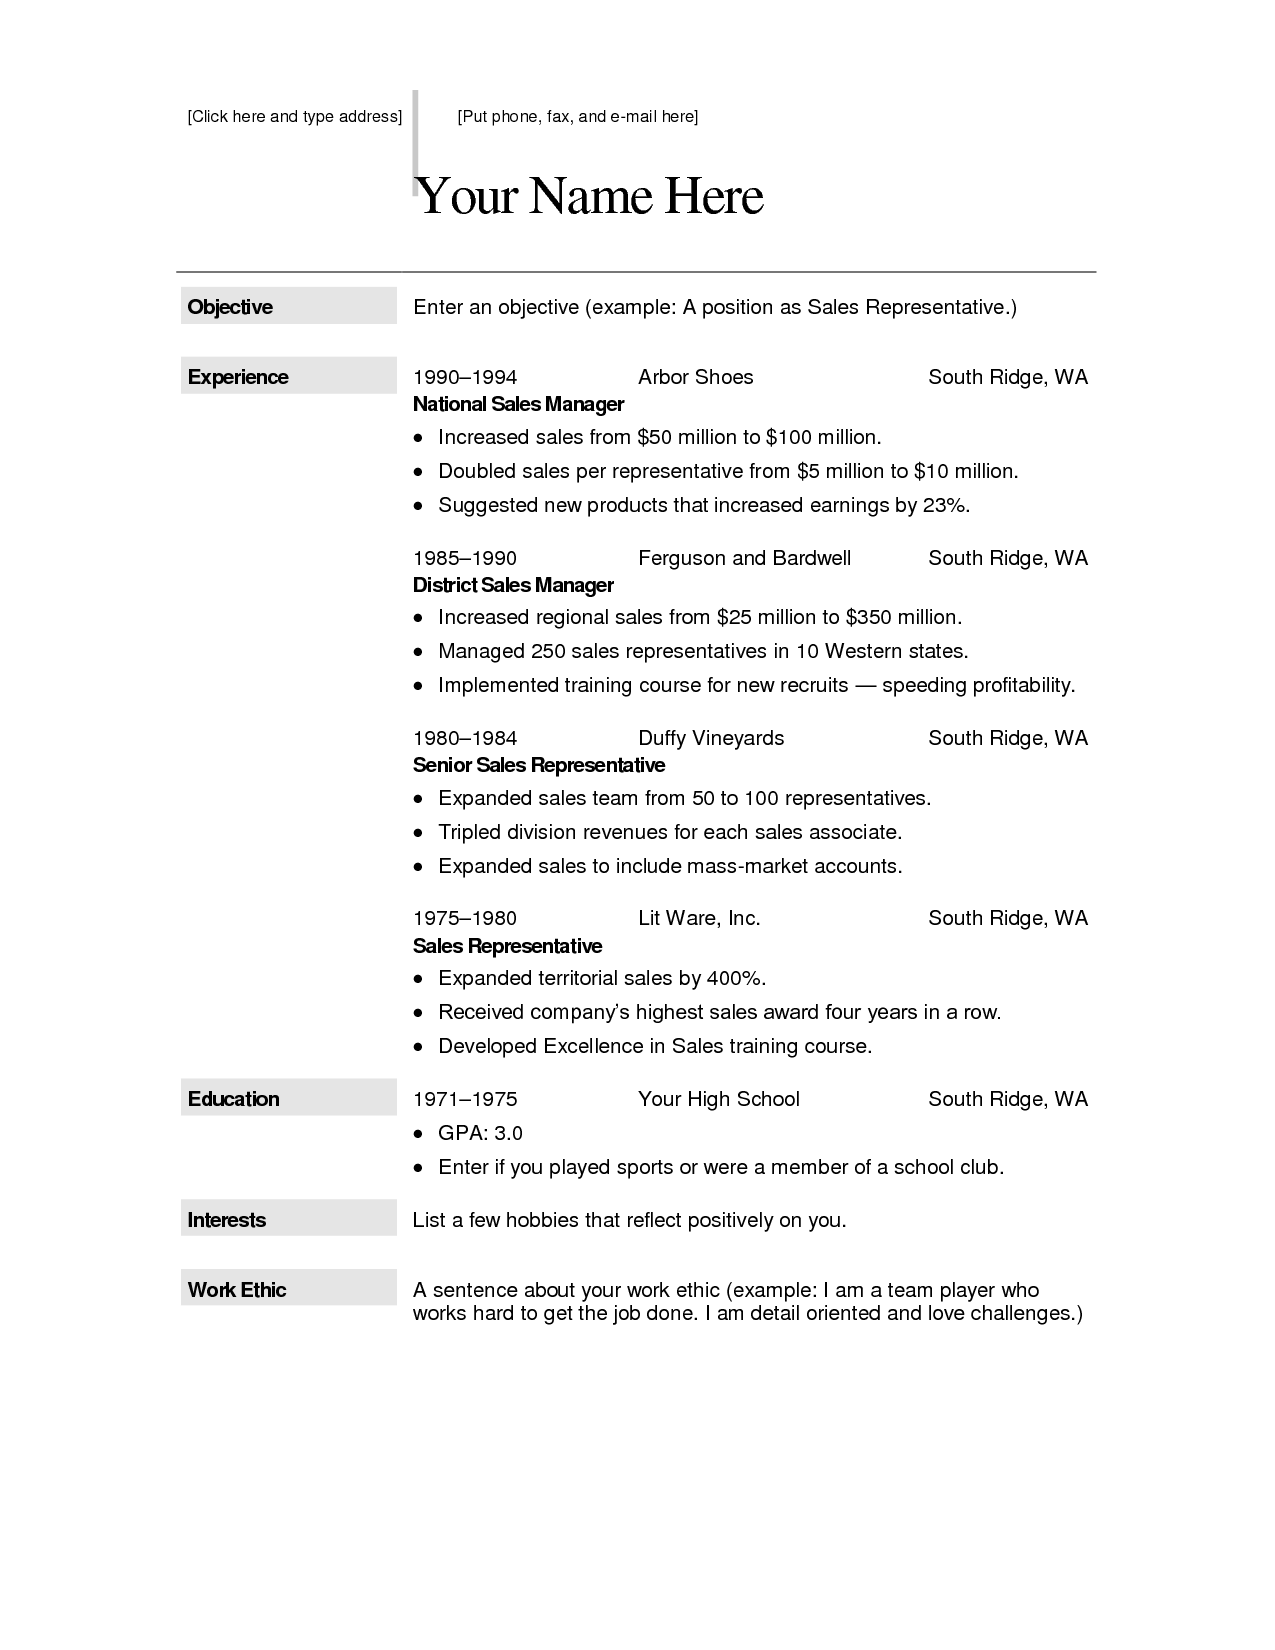 free creative resume templates for macfree creative resume templates for mac modern resume template - Resume Templates Download Free Word